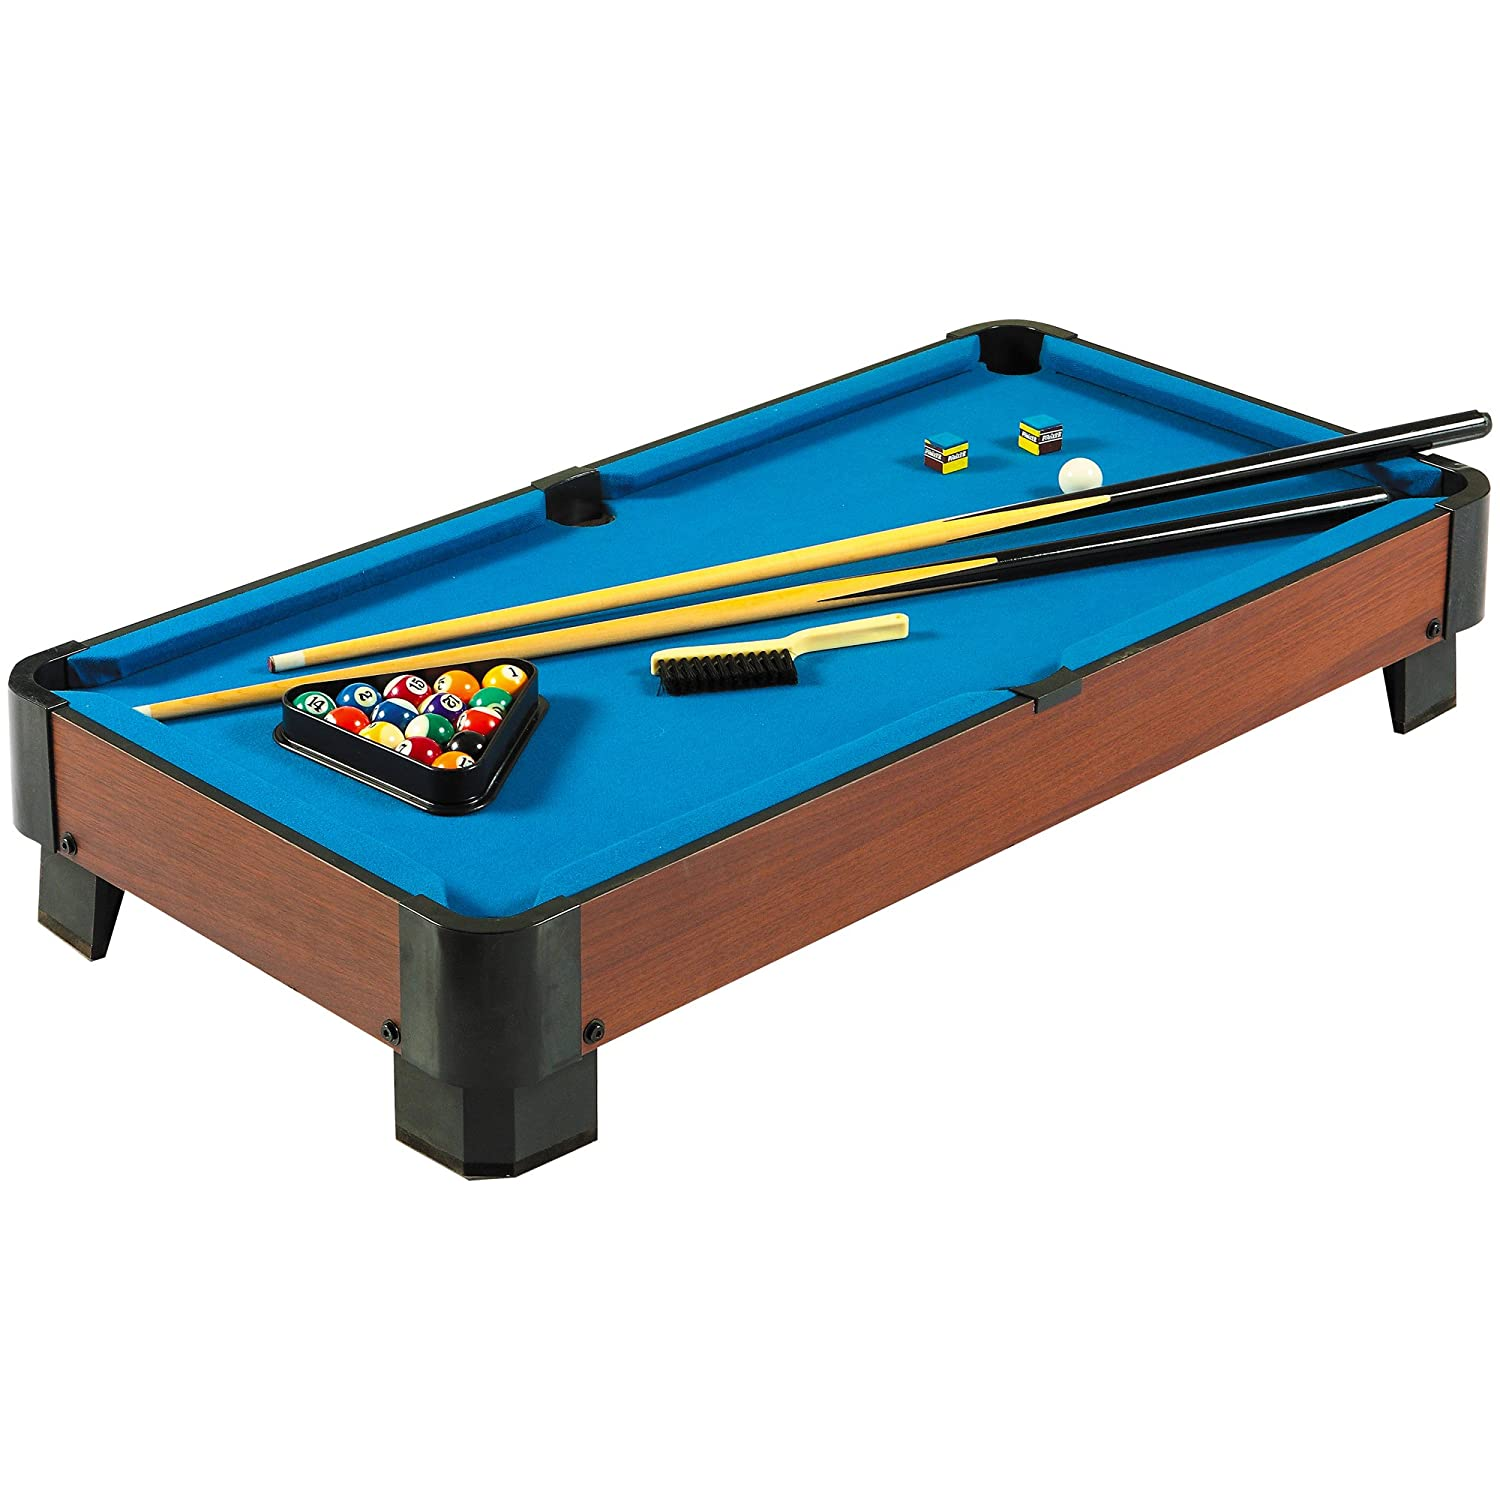 billiard mb ma sports equipment low cgtrader models snooker model table fbx poly